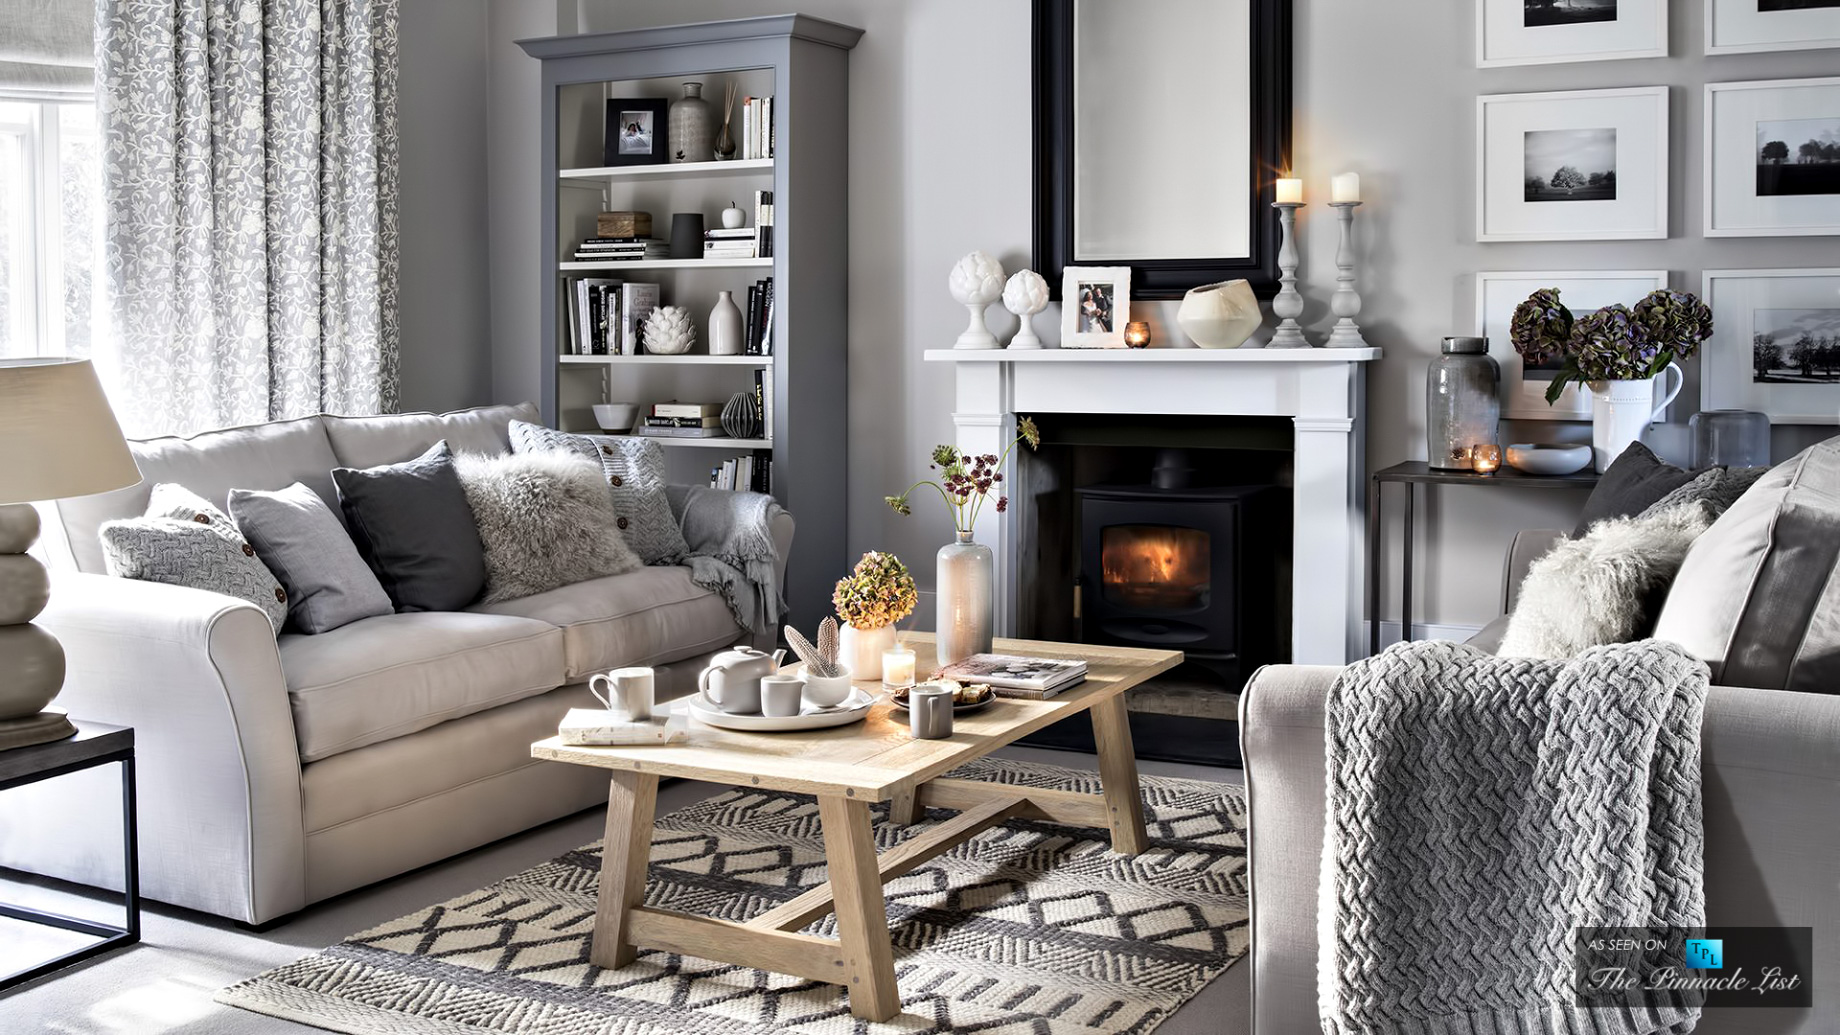 Hygge Interior Home Design - Cozy and Comfortable - Focus on Atmoshere and Feeling